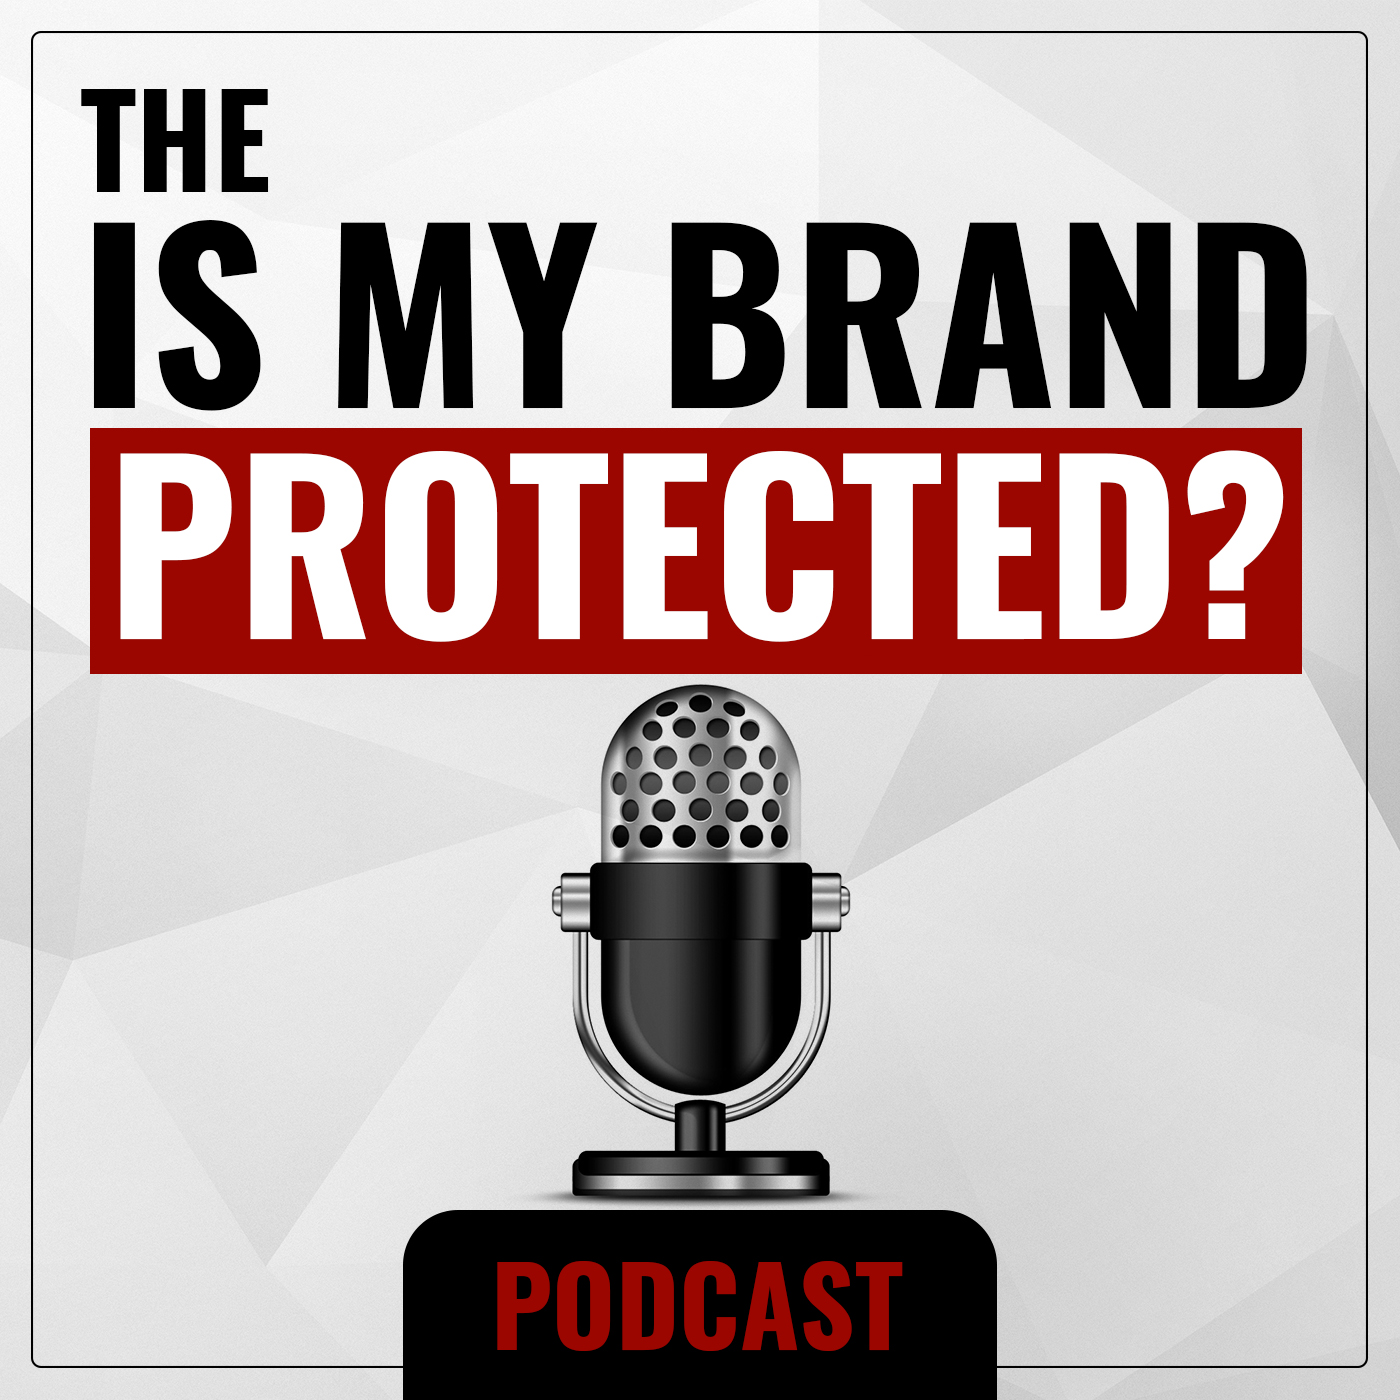 Be a Guest on the IS MY BRAND PROTECTED? Podcast